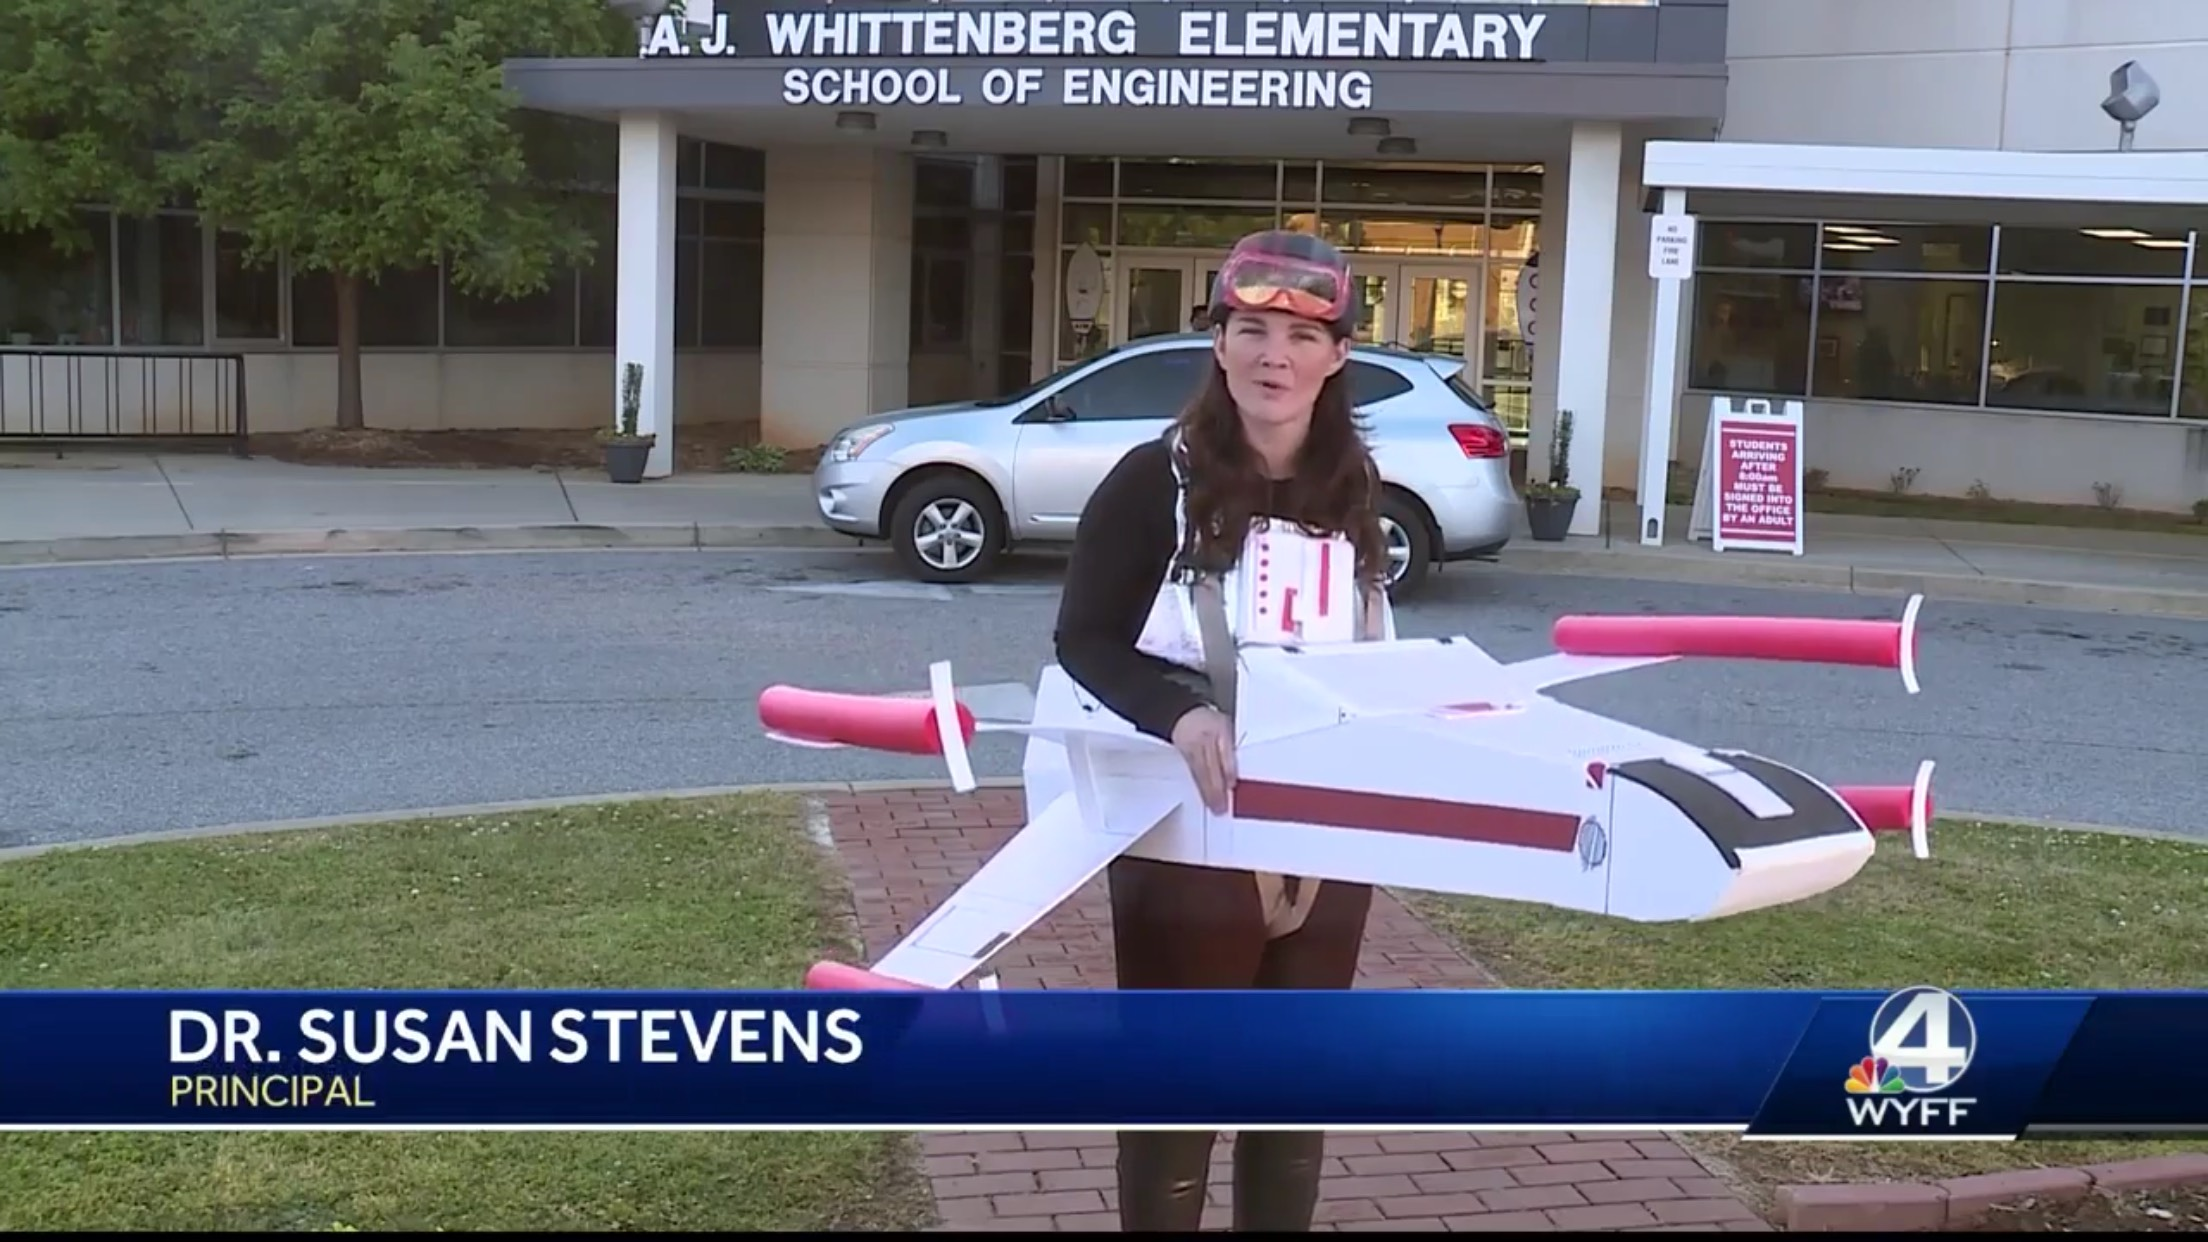 Dr. Susan Stevens: Principal. She is dressed like an X-Wing Fighter from Star Wars